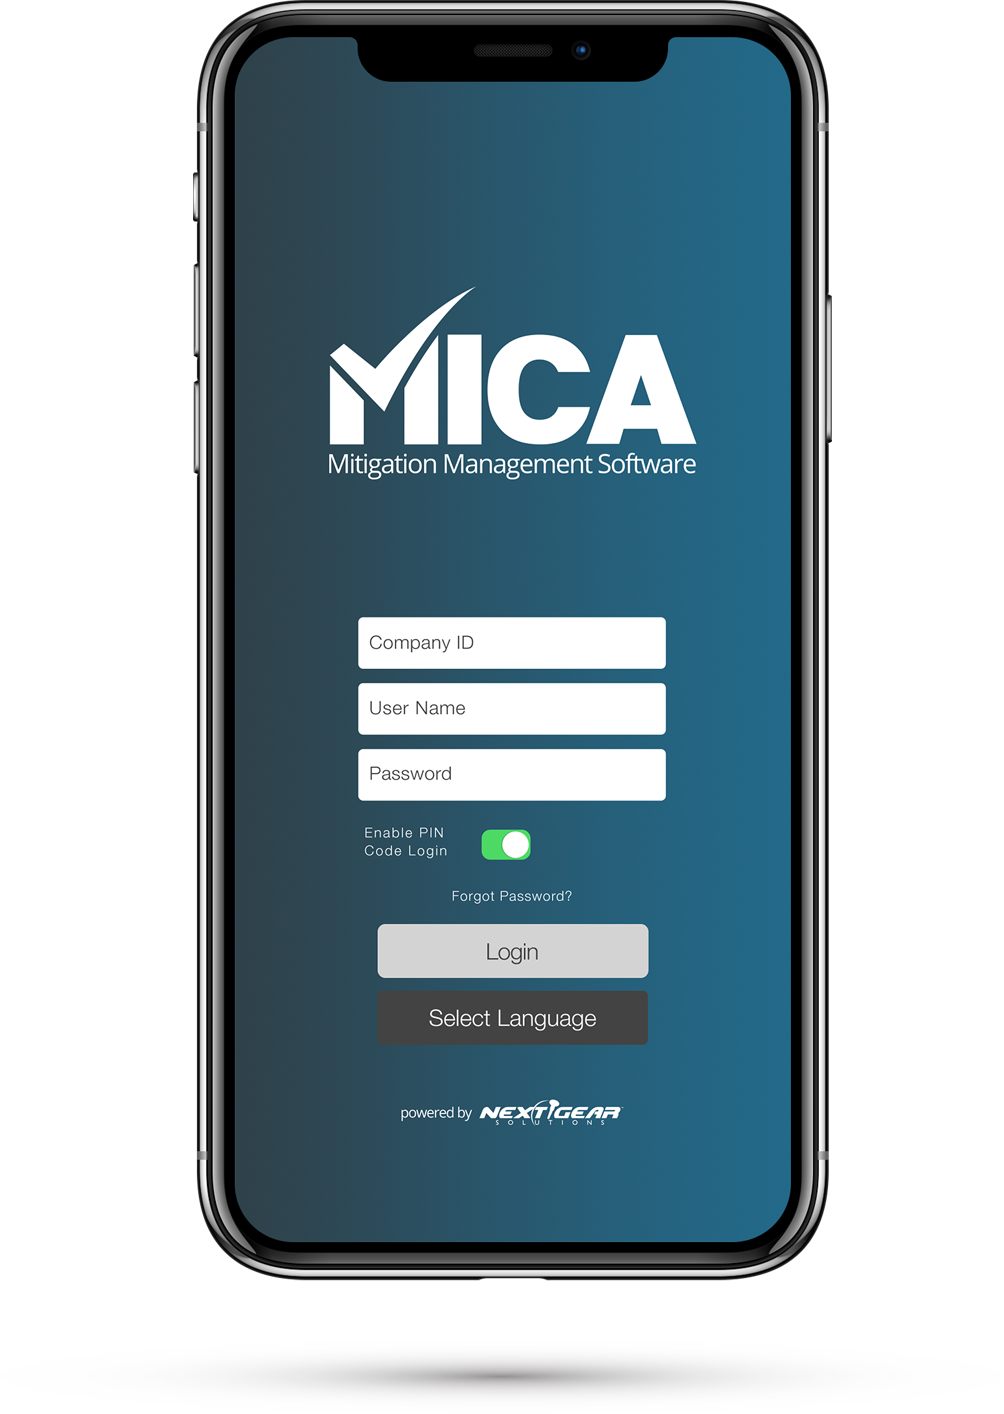 MICA-mitigation-management-software-mobile